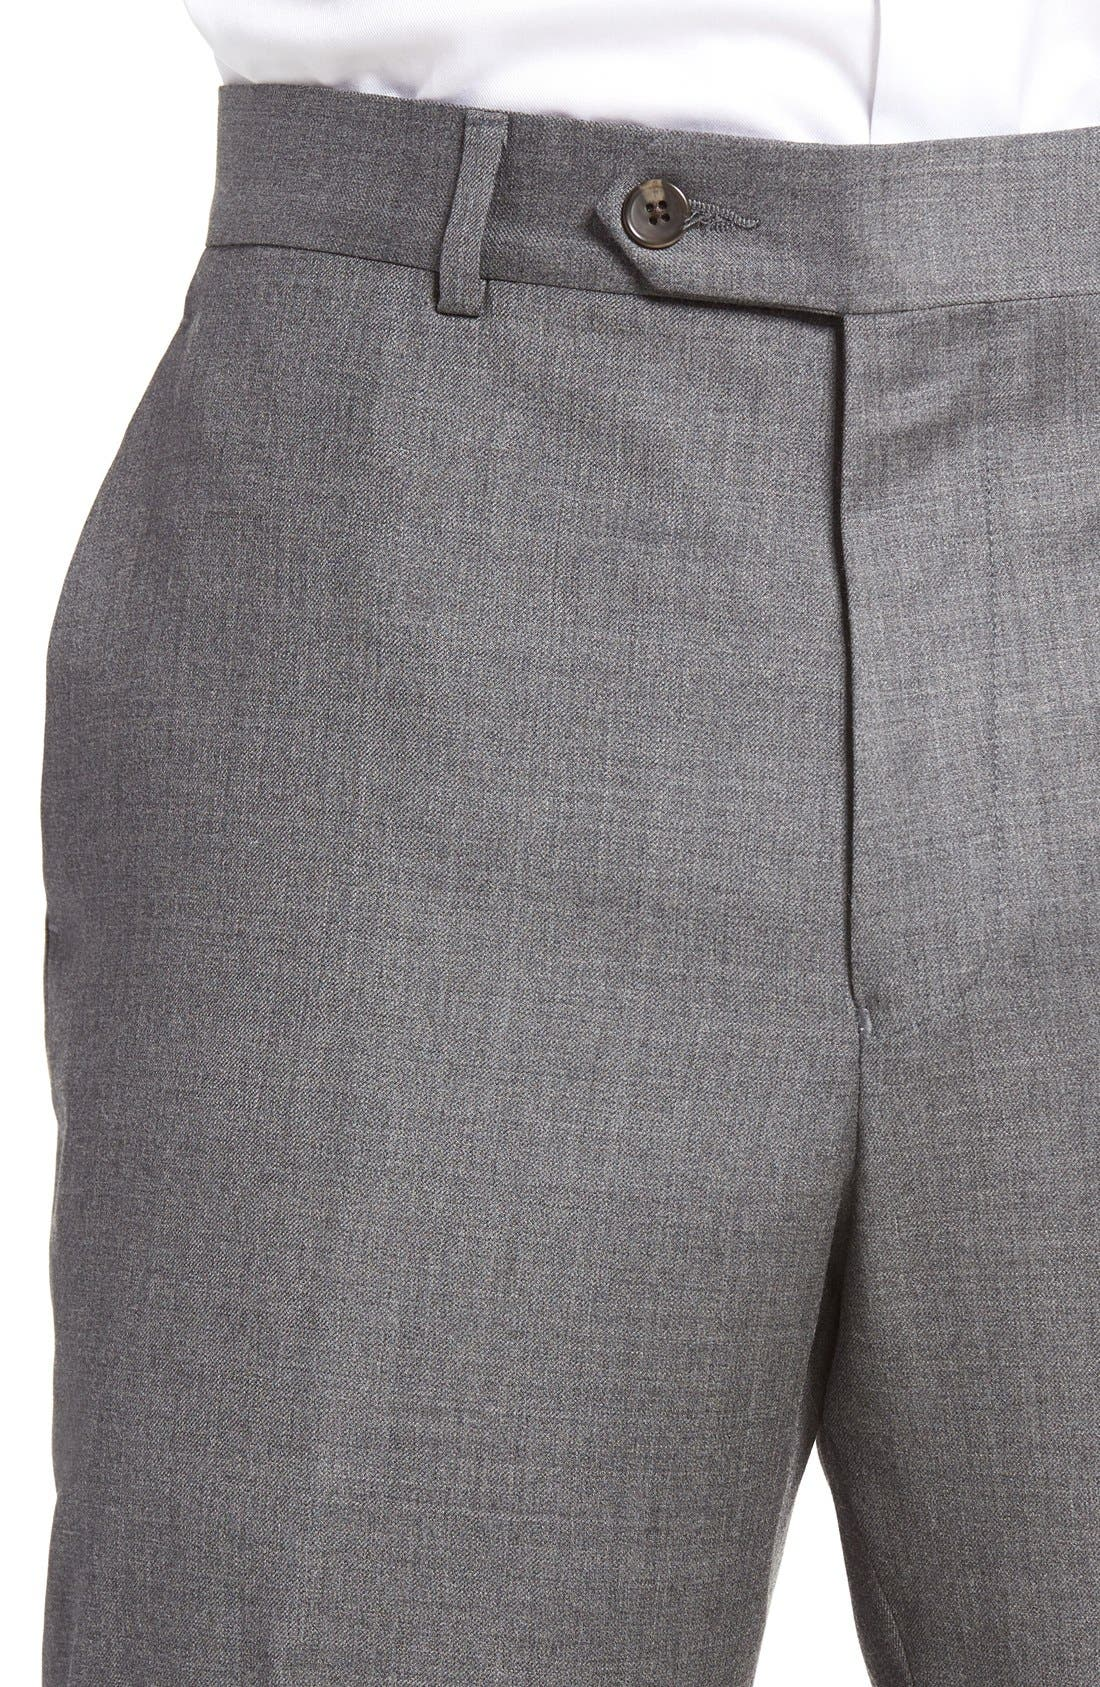 Dagger Flat Front Solid Wool Trousers,                             Alternate thumbnail 4, color,                             Medium Grey